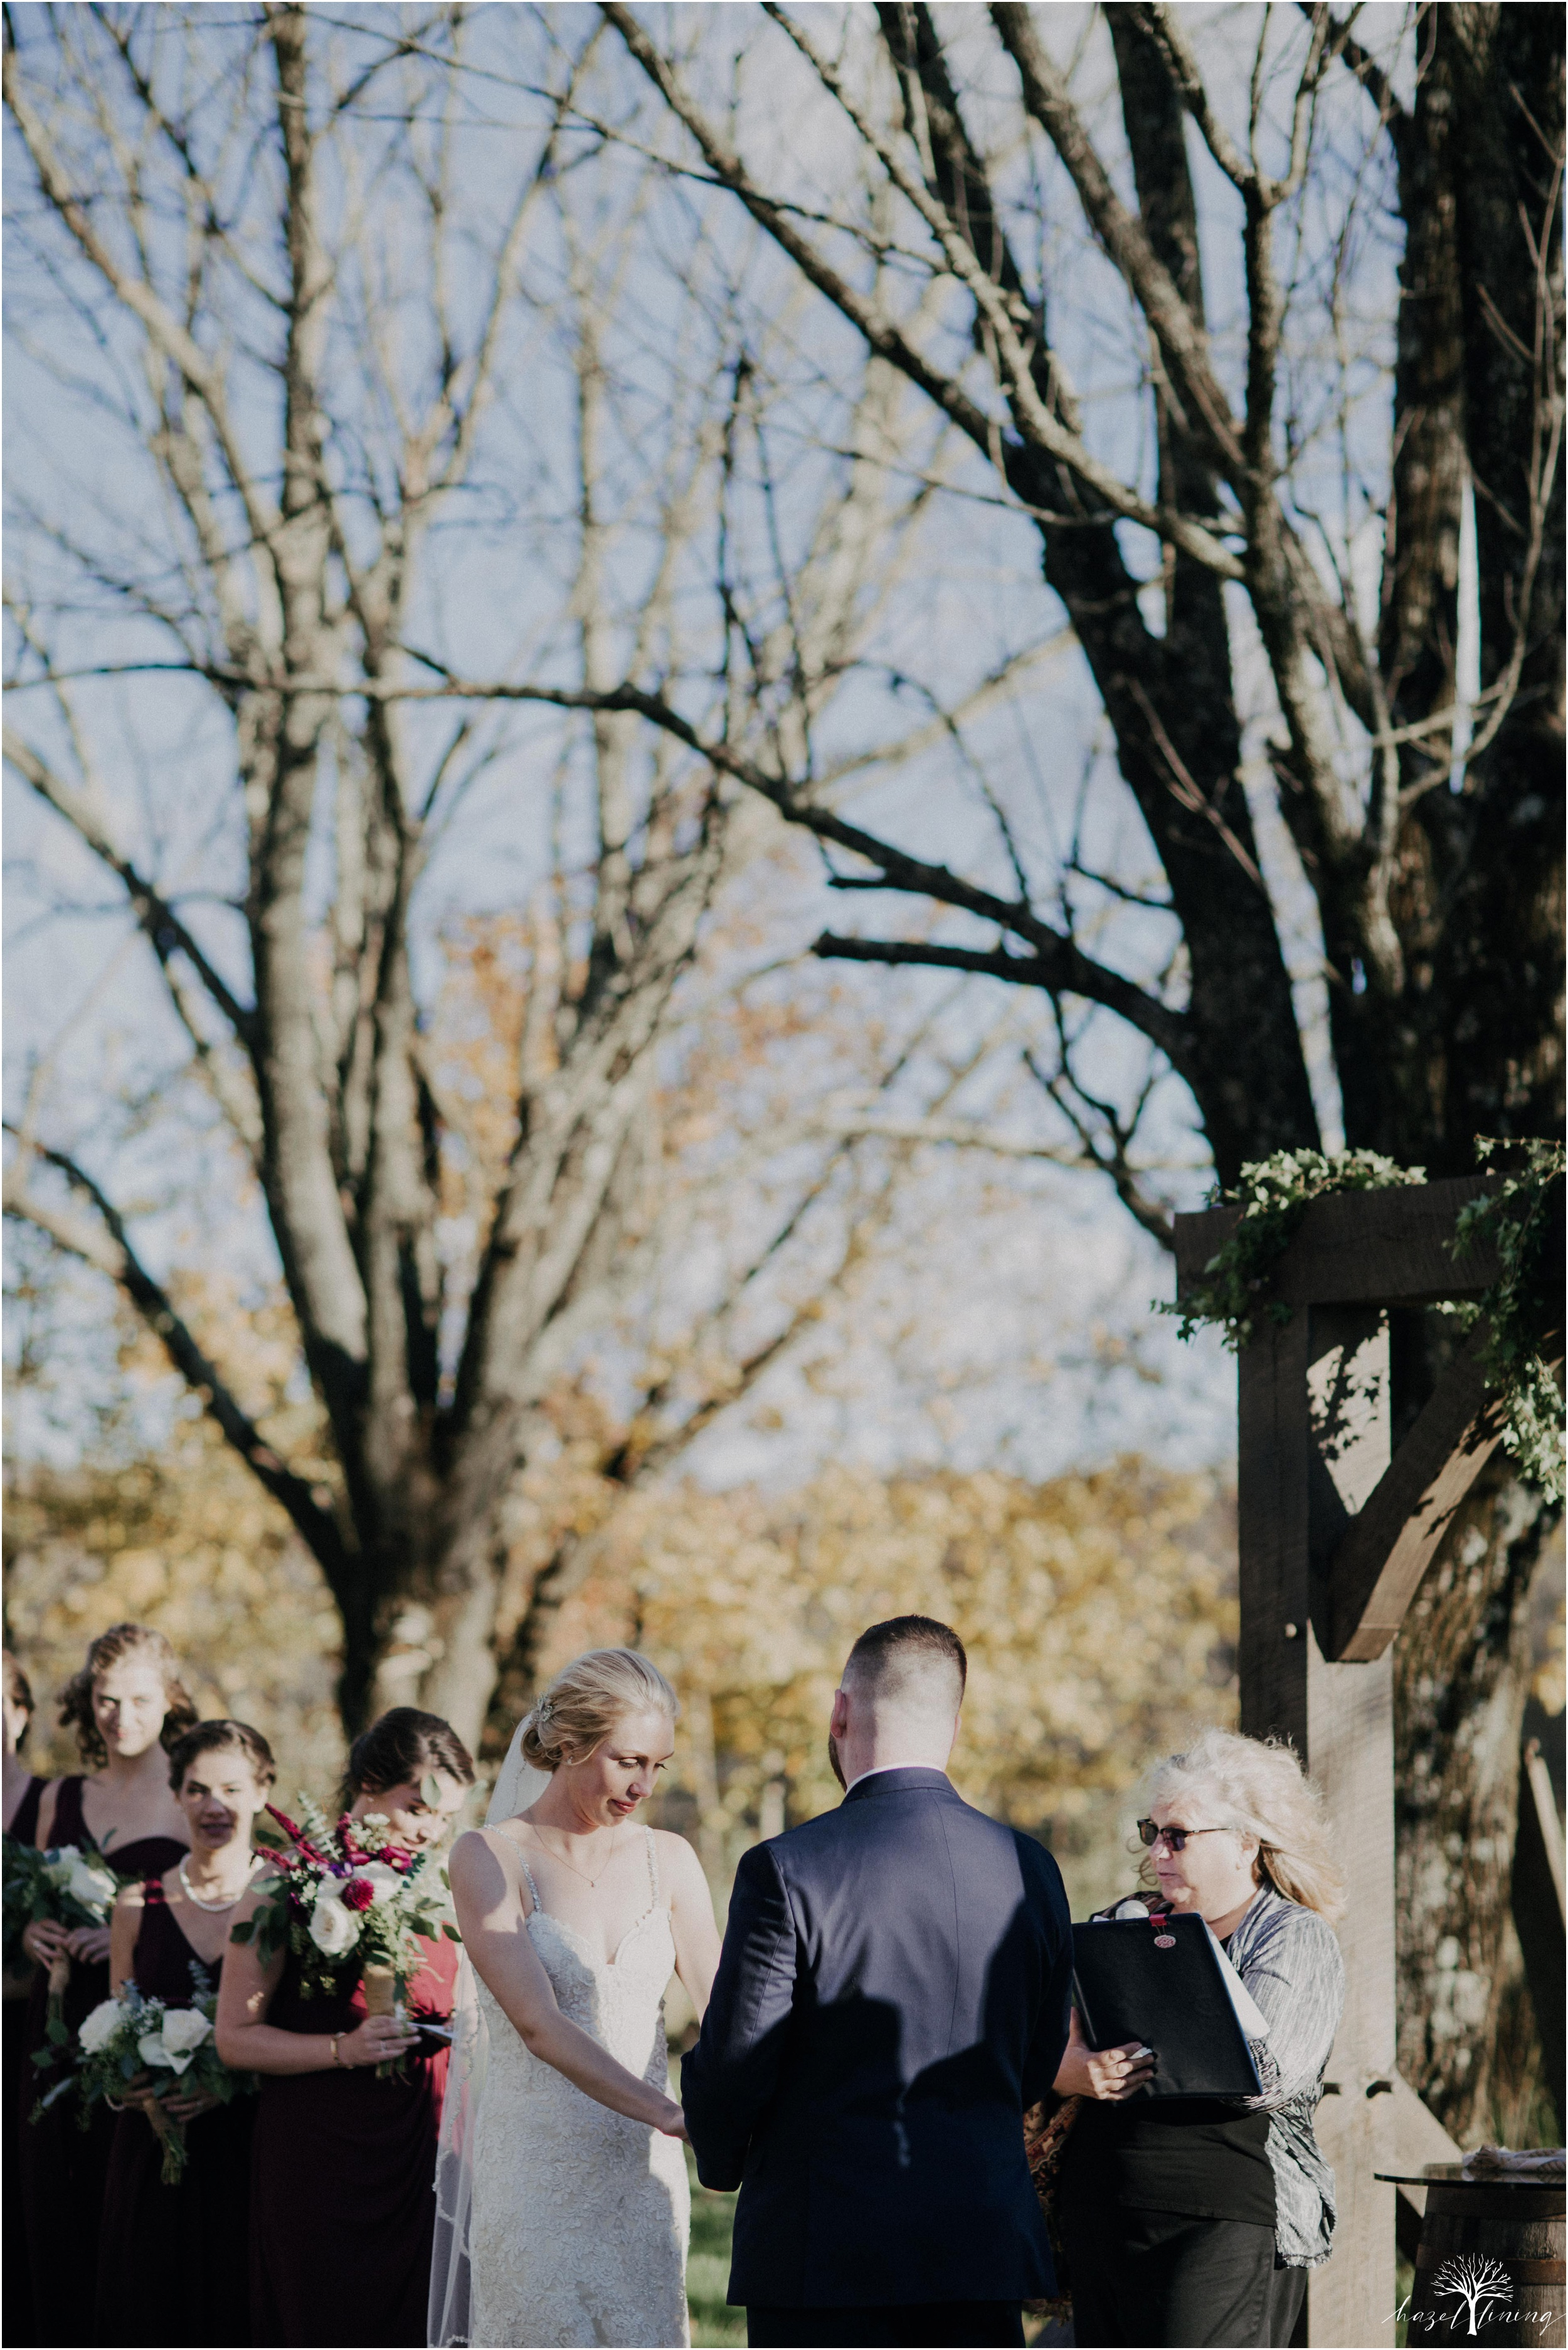 briana-krans-greg-johnston-farm-bakery-and-events-fall-wedding_0096.jpg